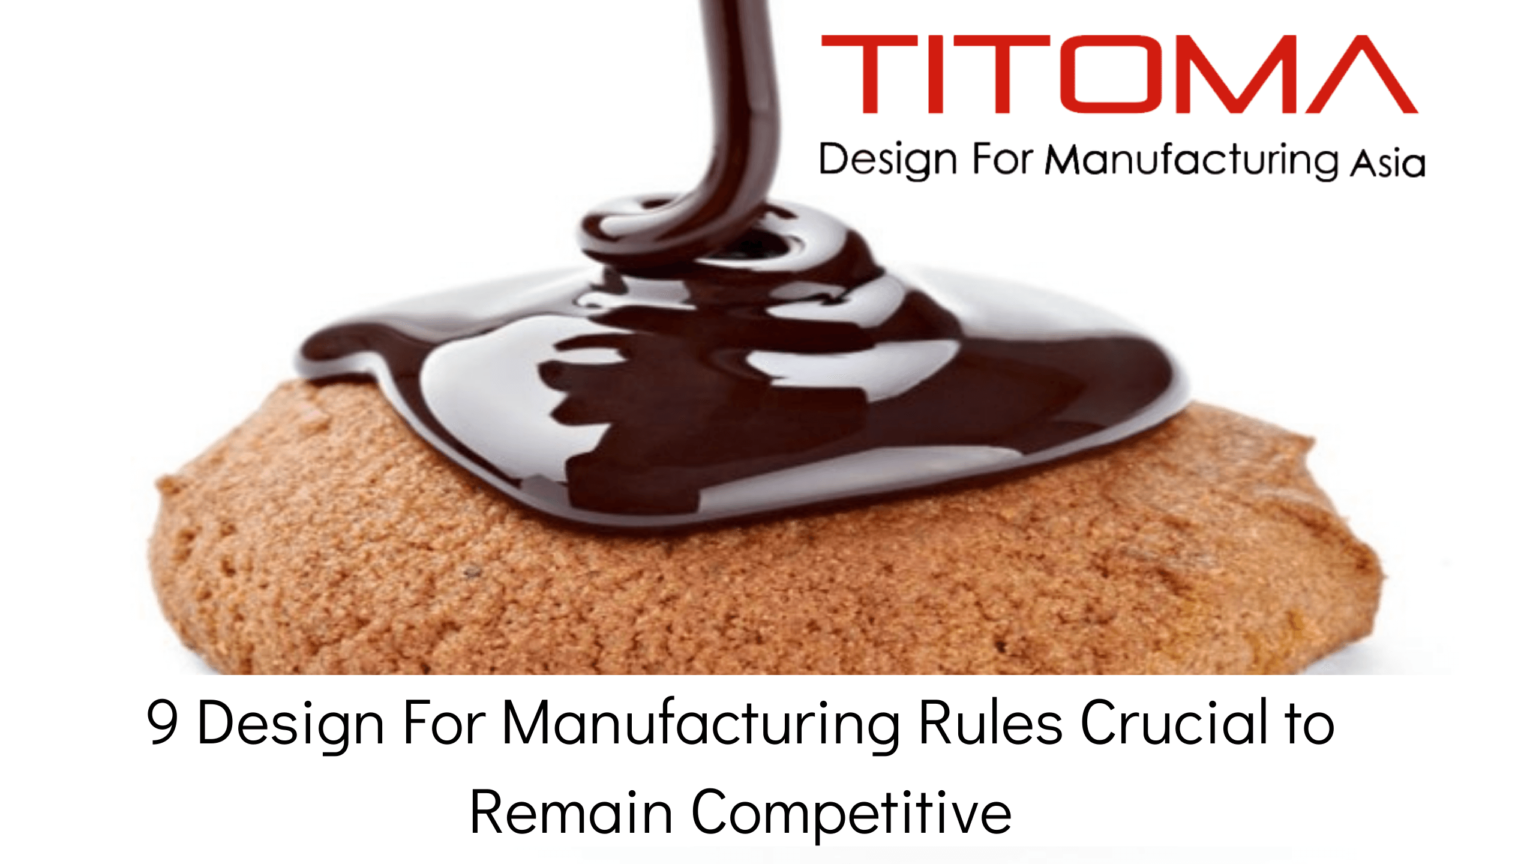 Design for manufacturing china